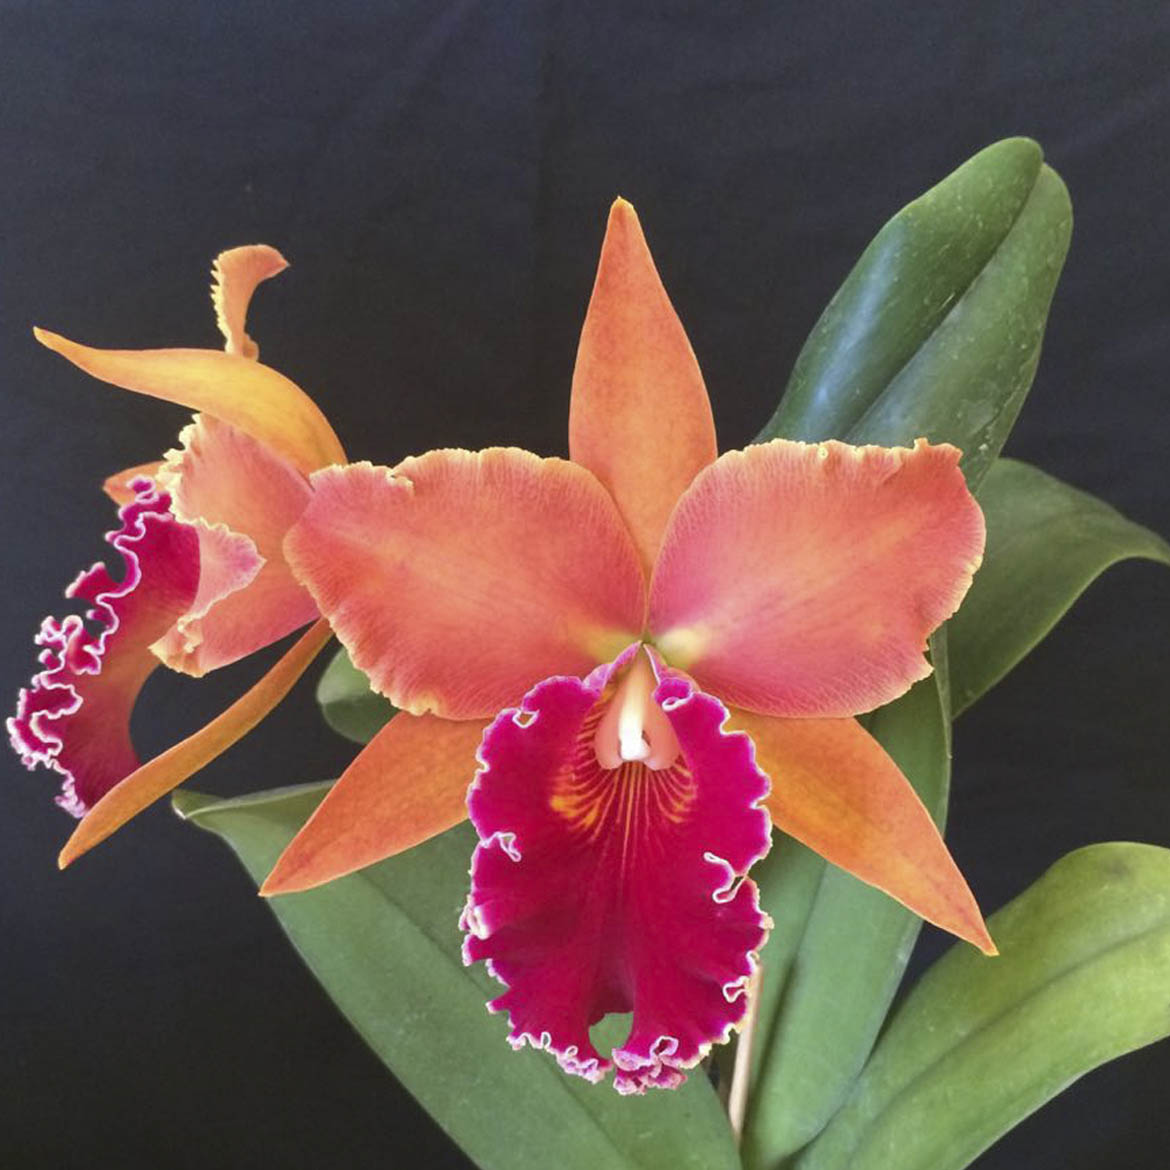 "Blc. chia lin ""New City"" AM/AOS X Blc. chunyeah ""Good Life"" AM/AOS"